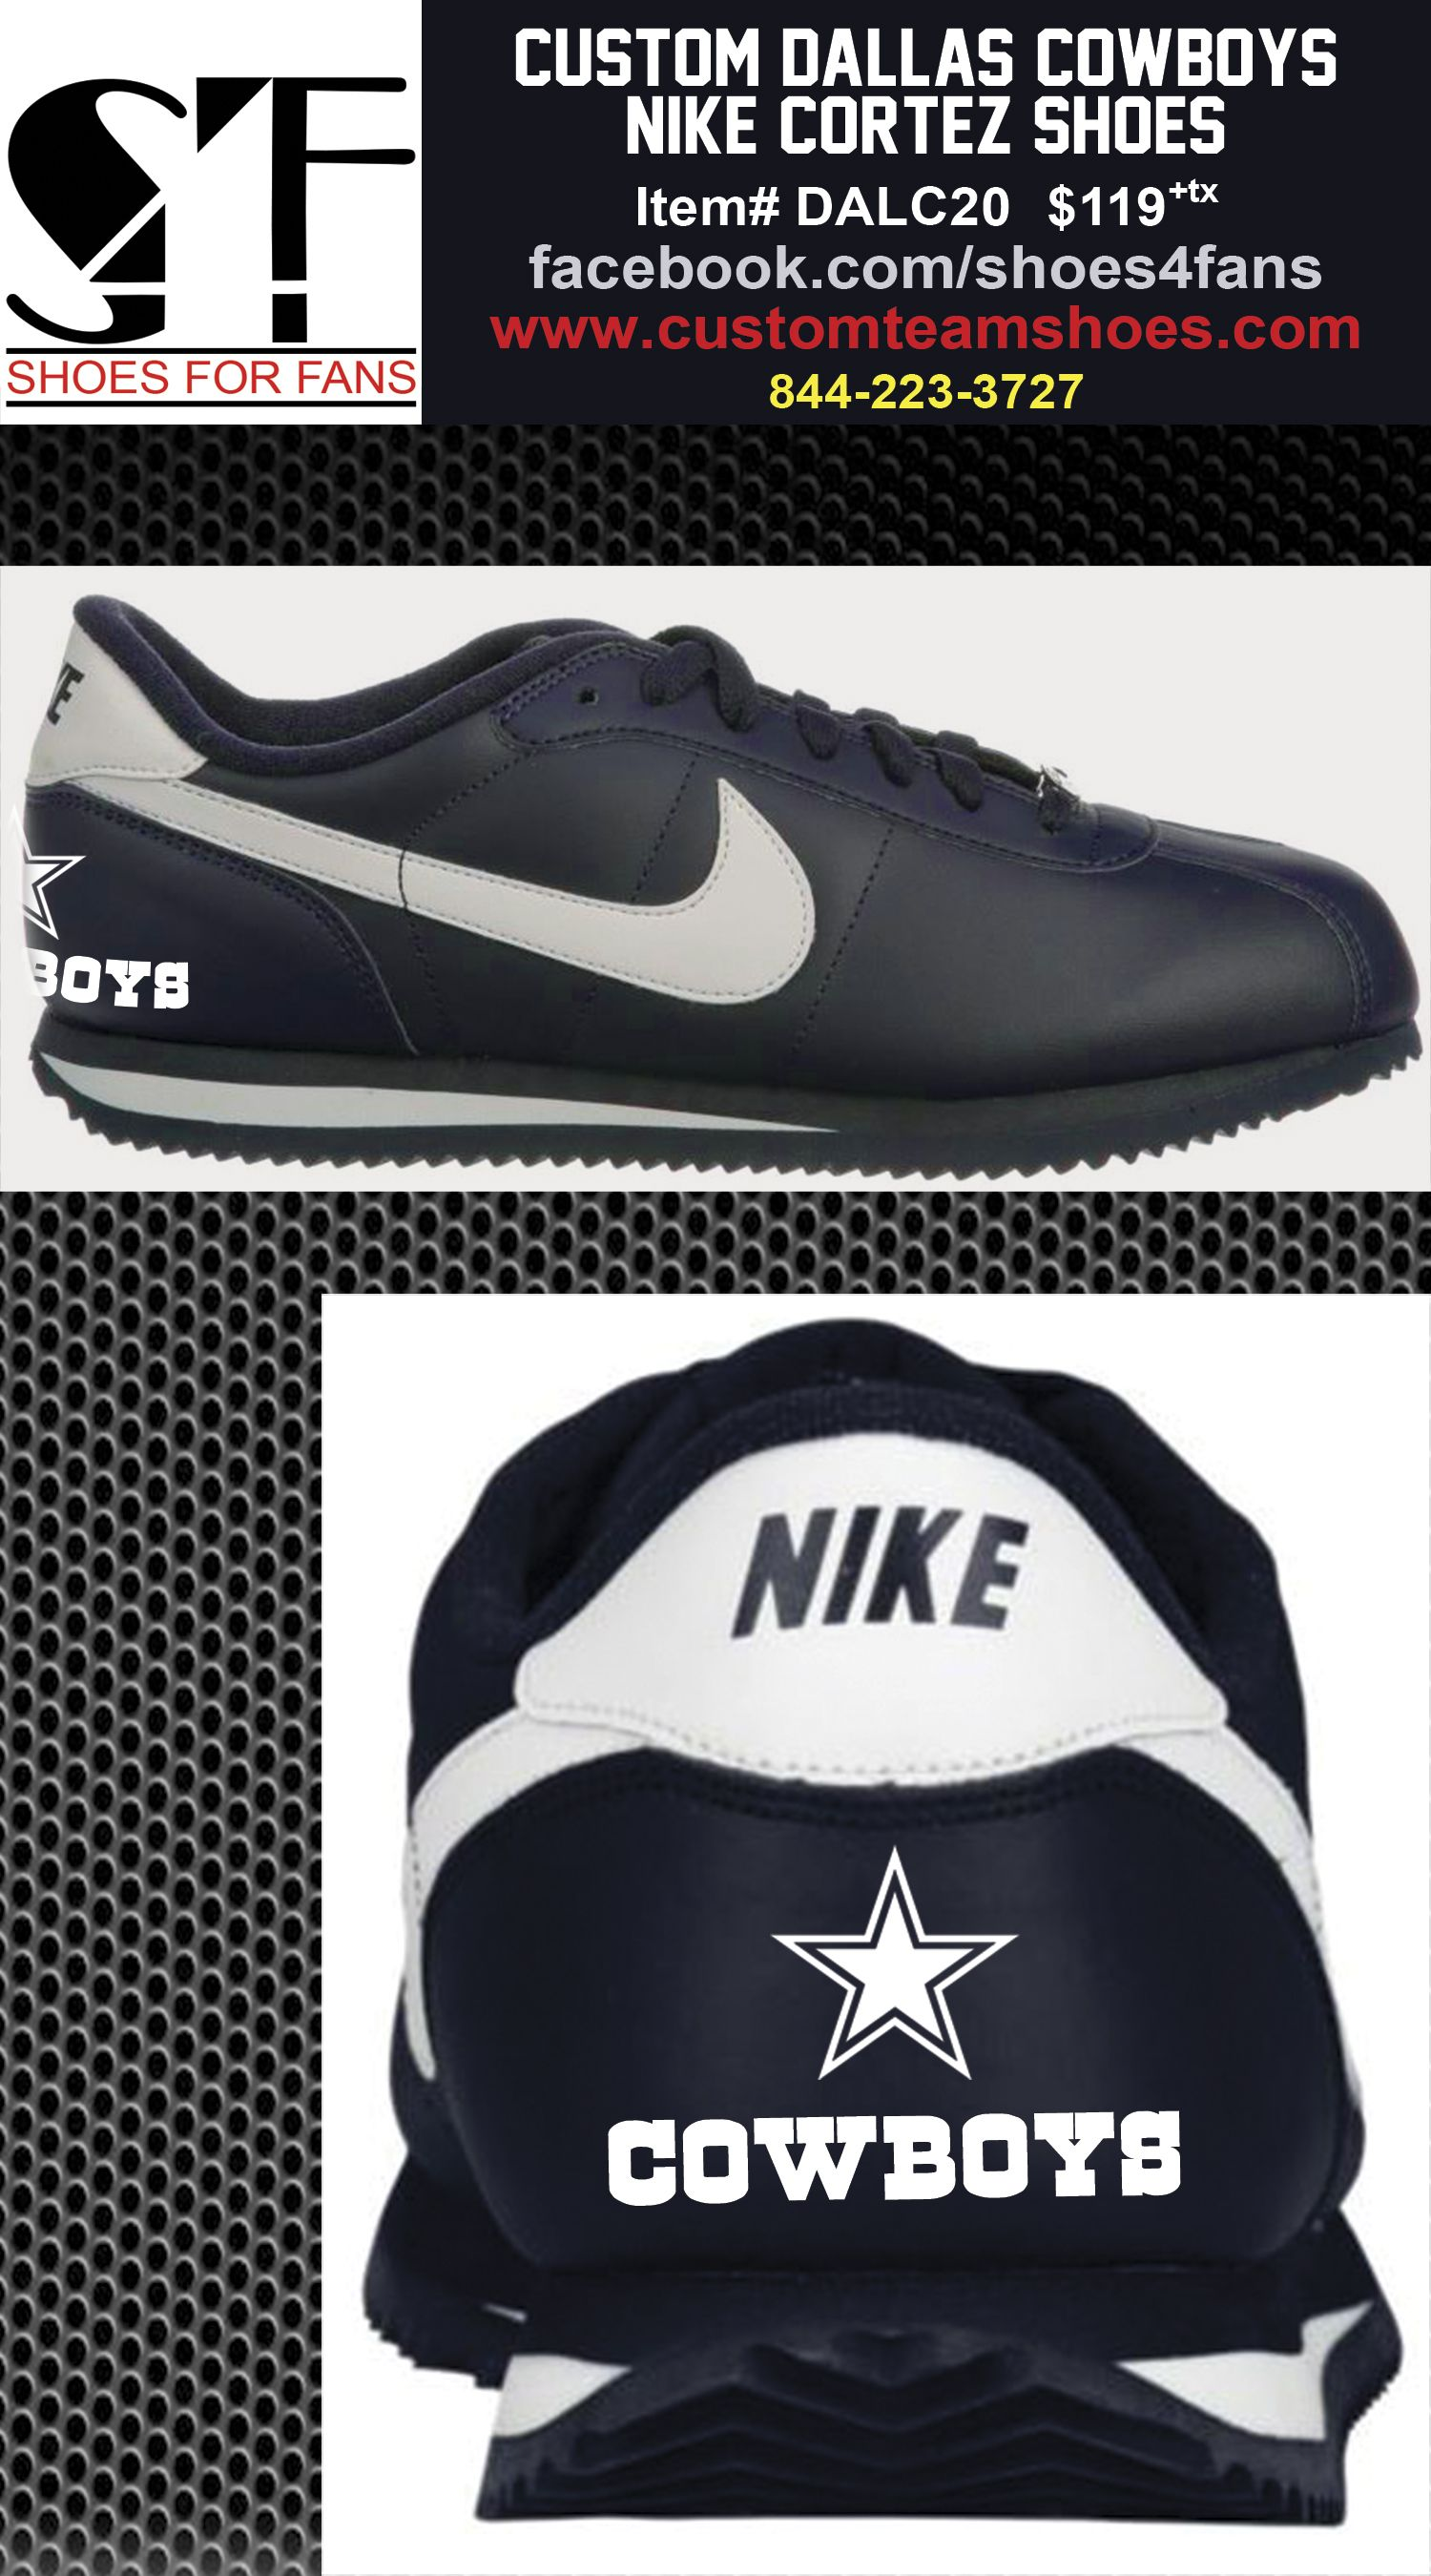 pin by shoes4fans on dallas cowboys footwear pinterest